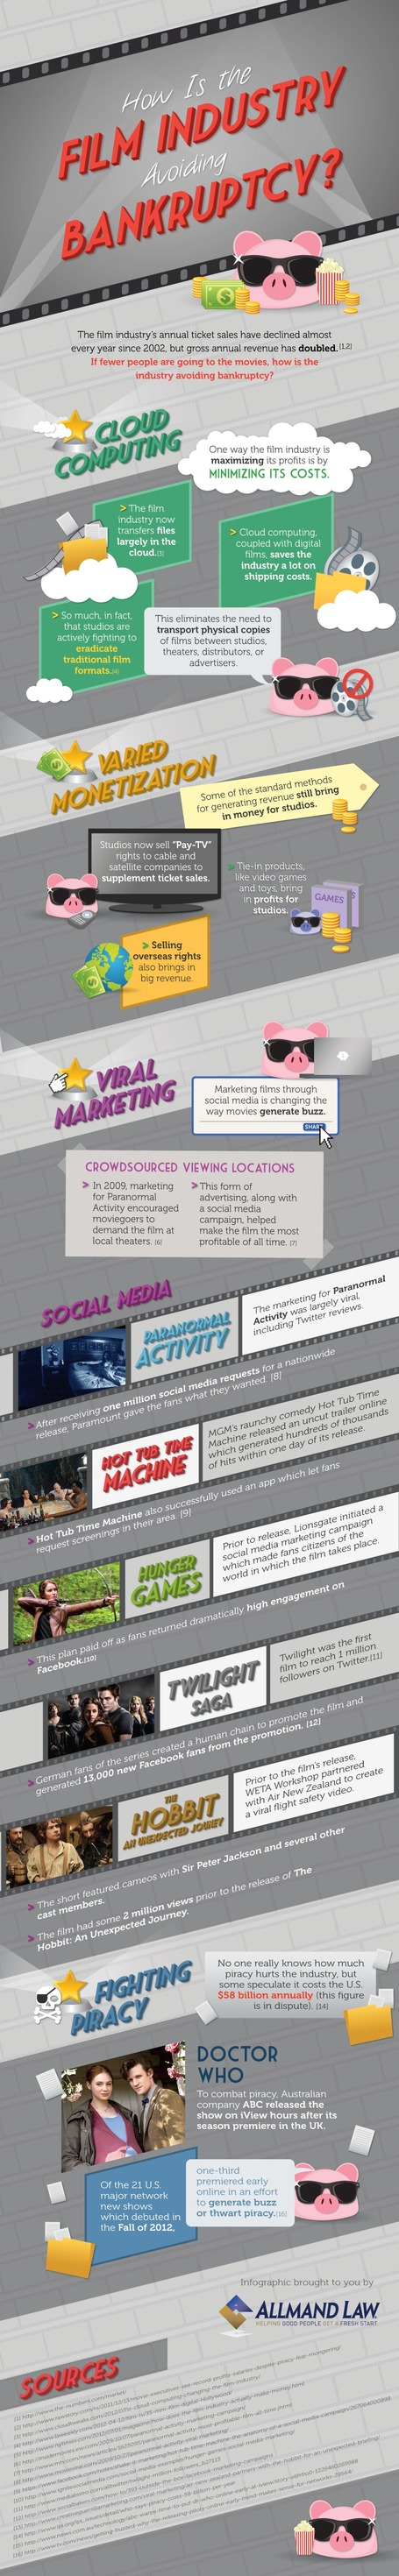 How Social Media and Viral Marketing are Saving the Film Industry [INFOGRAPHIC] | Documentary Landscapes | Scoop.it